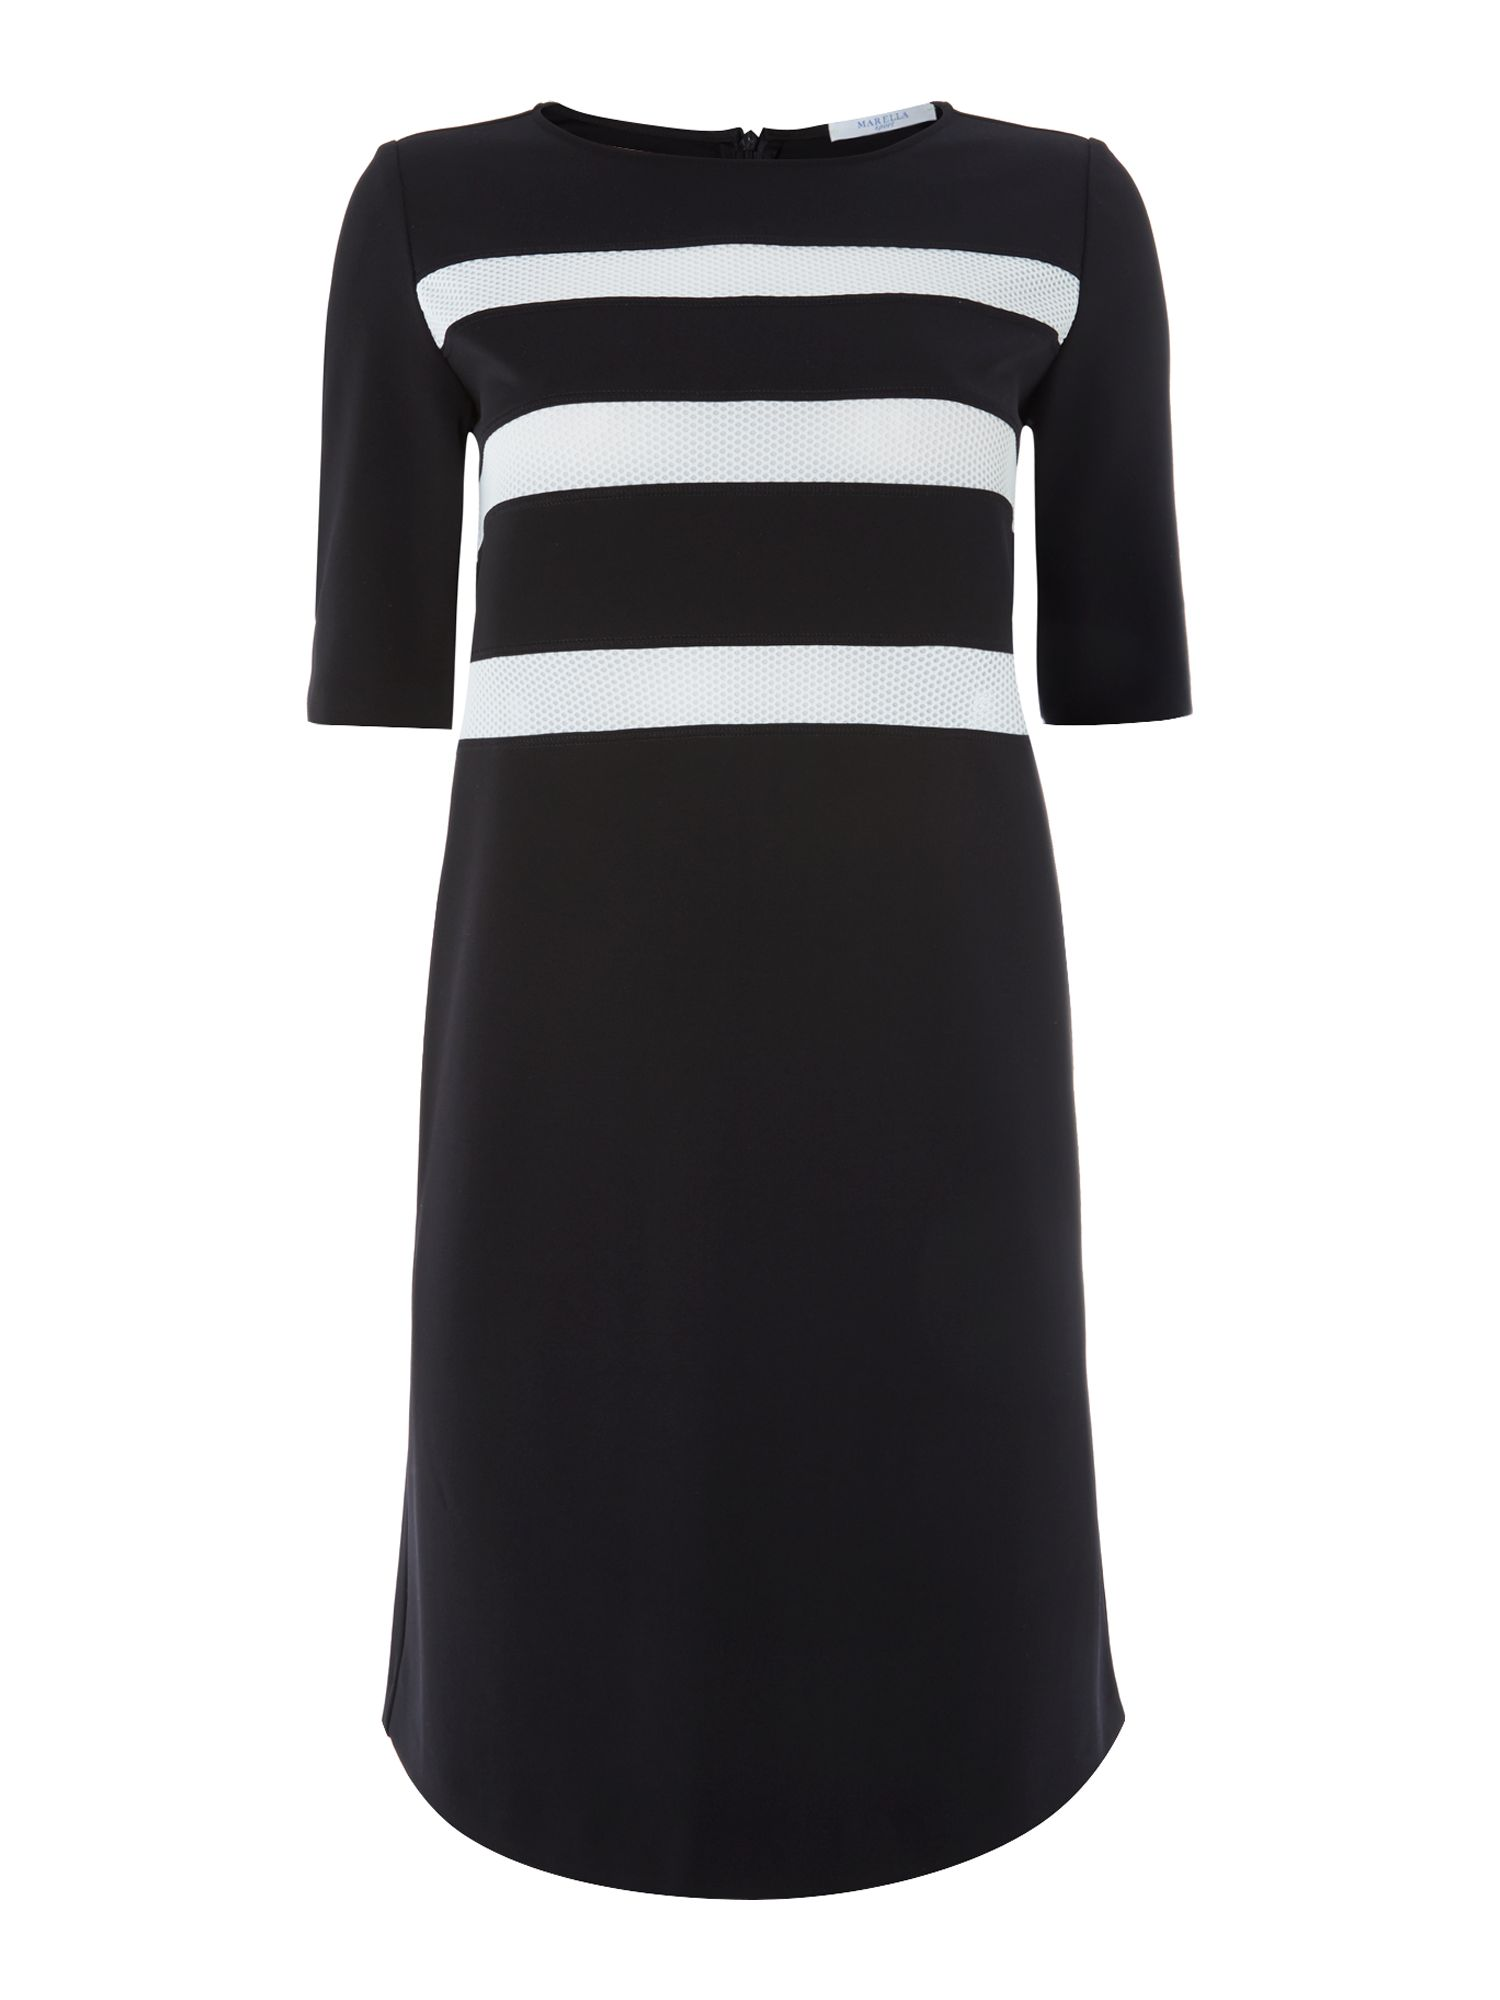 Darling monochrome dress